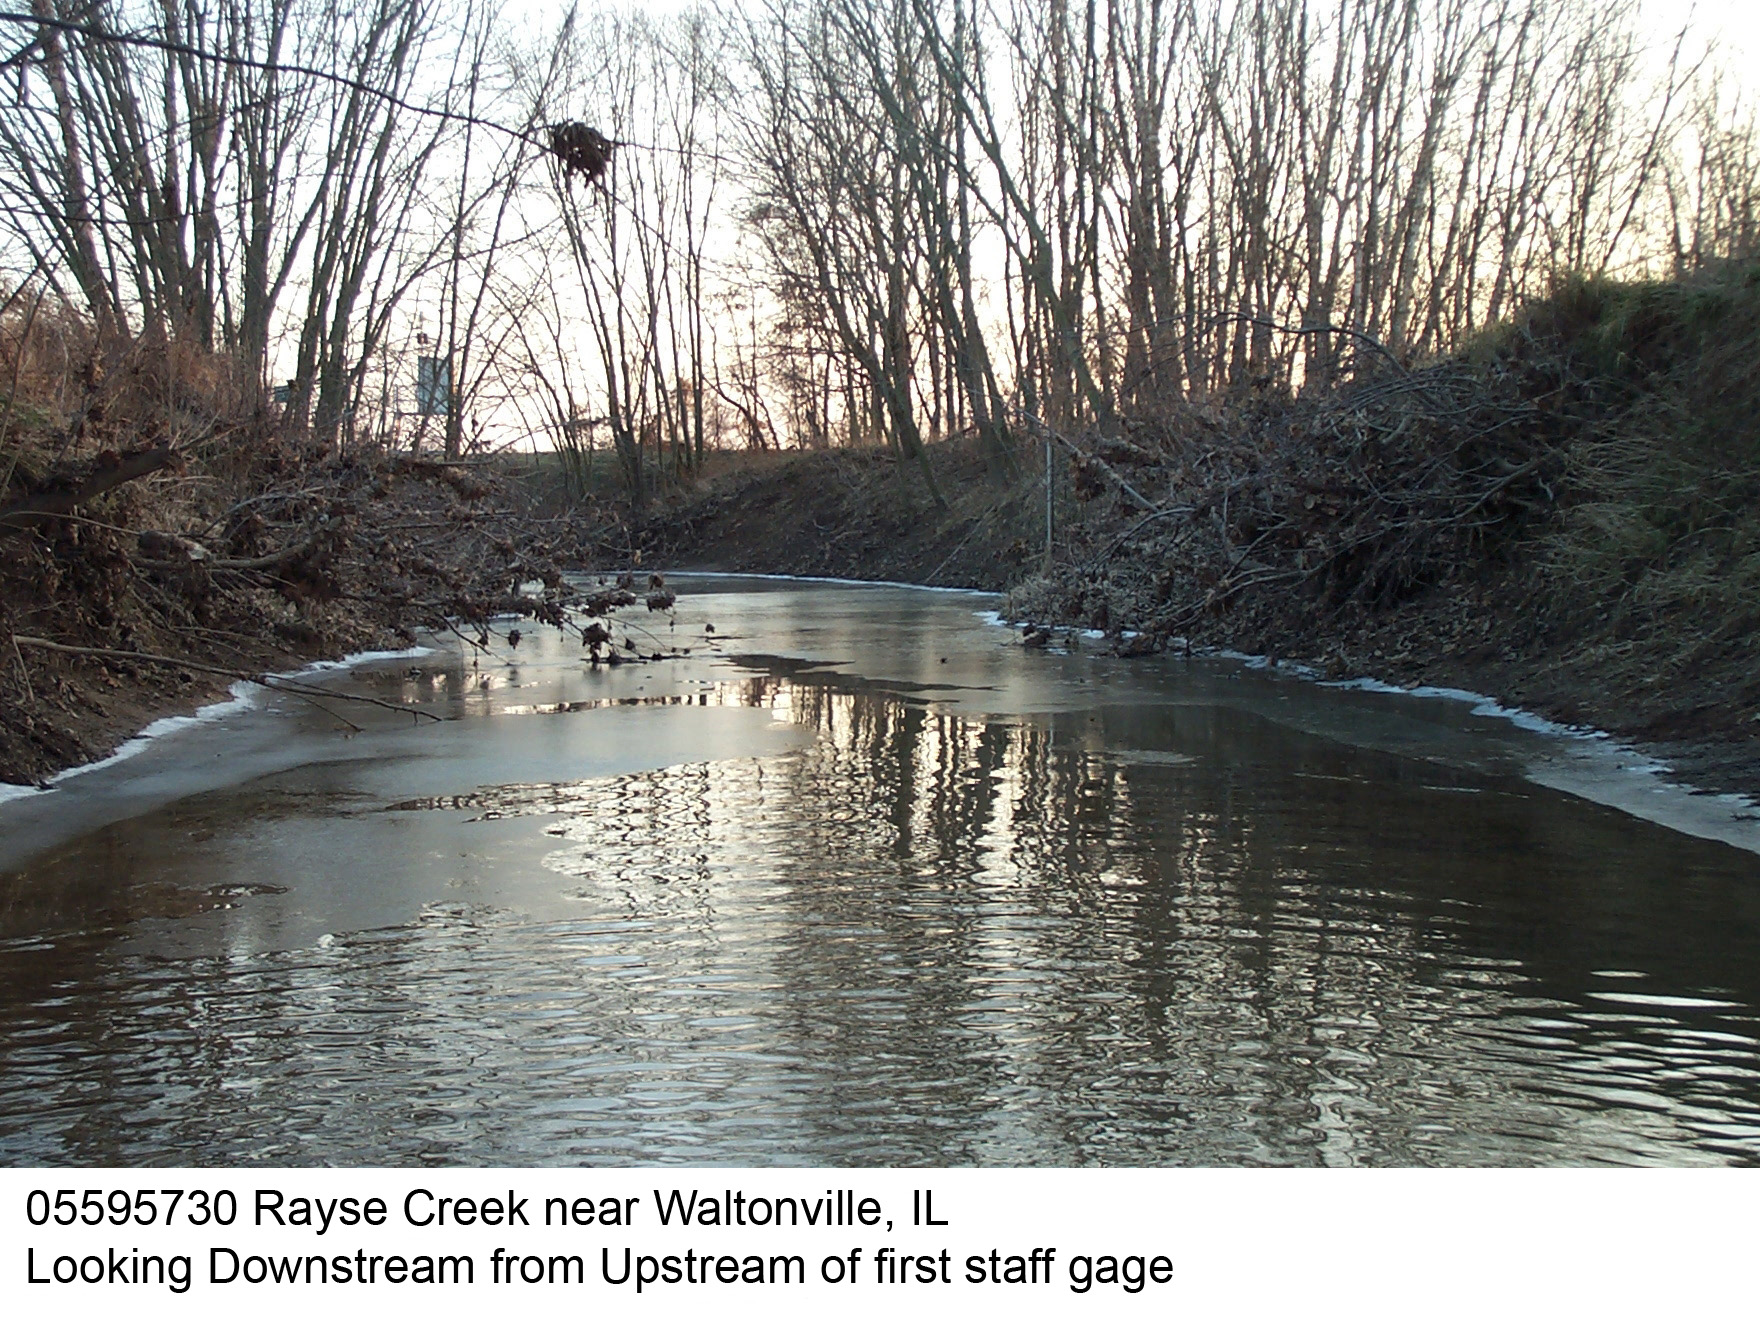 Illinois jefferson county waltonville - Description Of Channel This Channel Is A Straightened Reach Of A Natural Channel The Streambed Consists Of Silt Clay And Gravel Mixtures